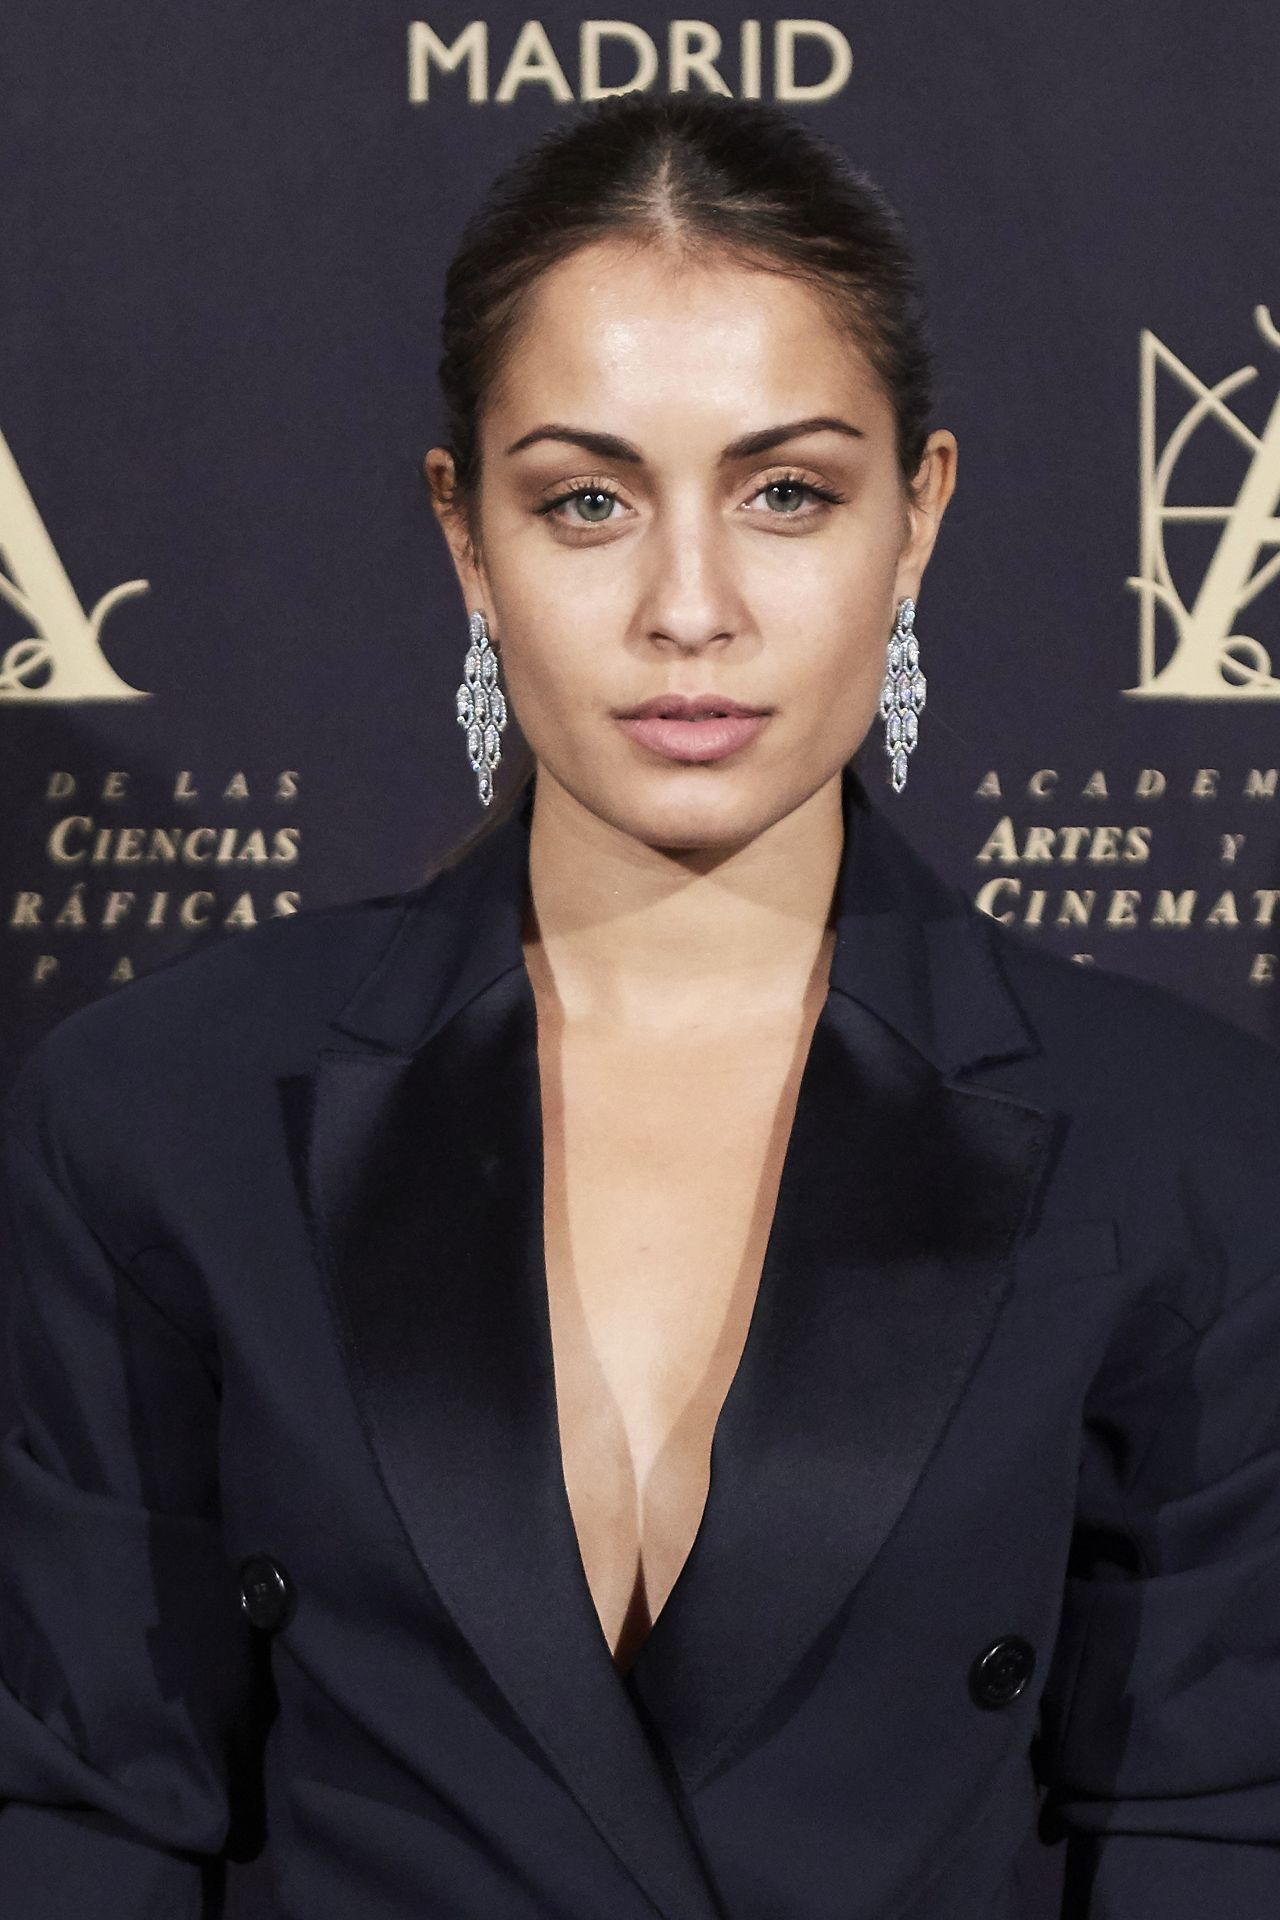 Hiba Abouk – Academy of Motion Picture Arts and Sciences Photocall in Madrid 10/09/2017